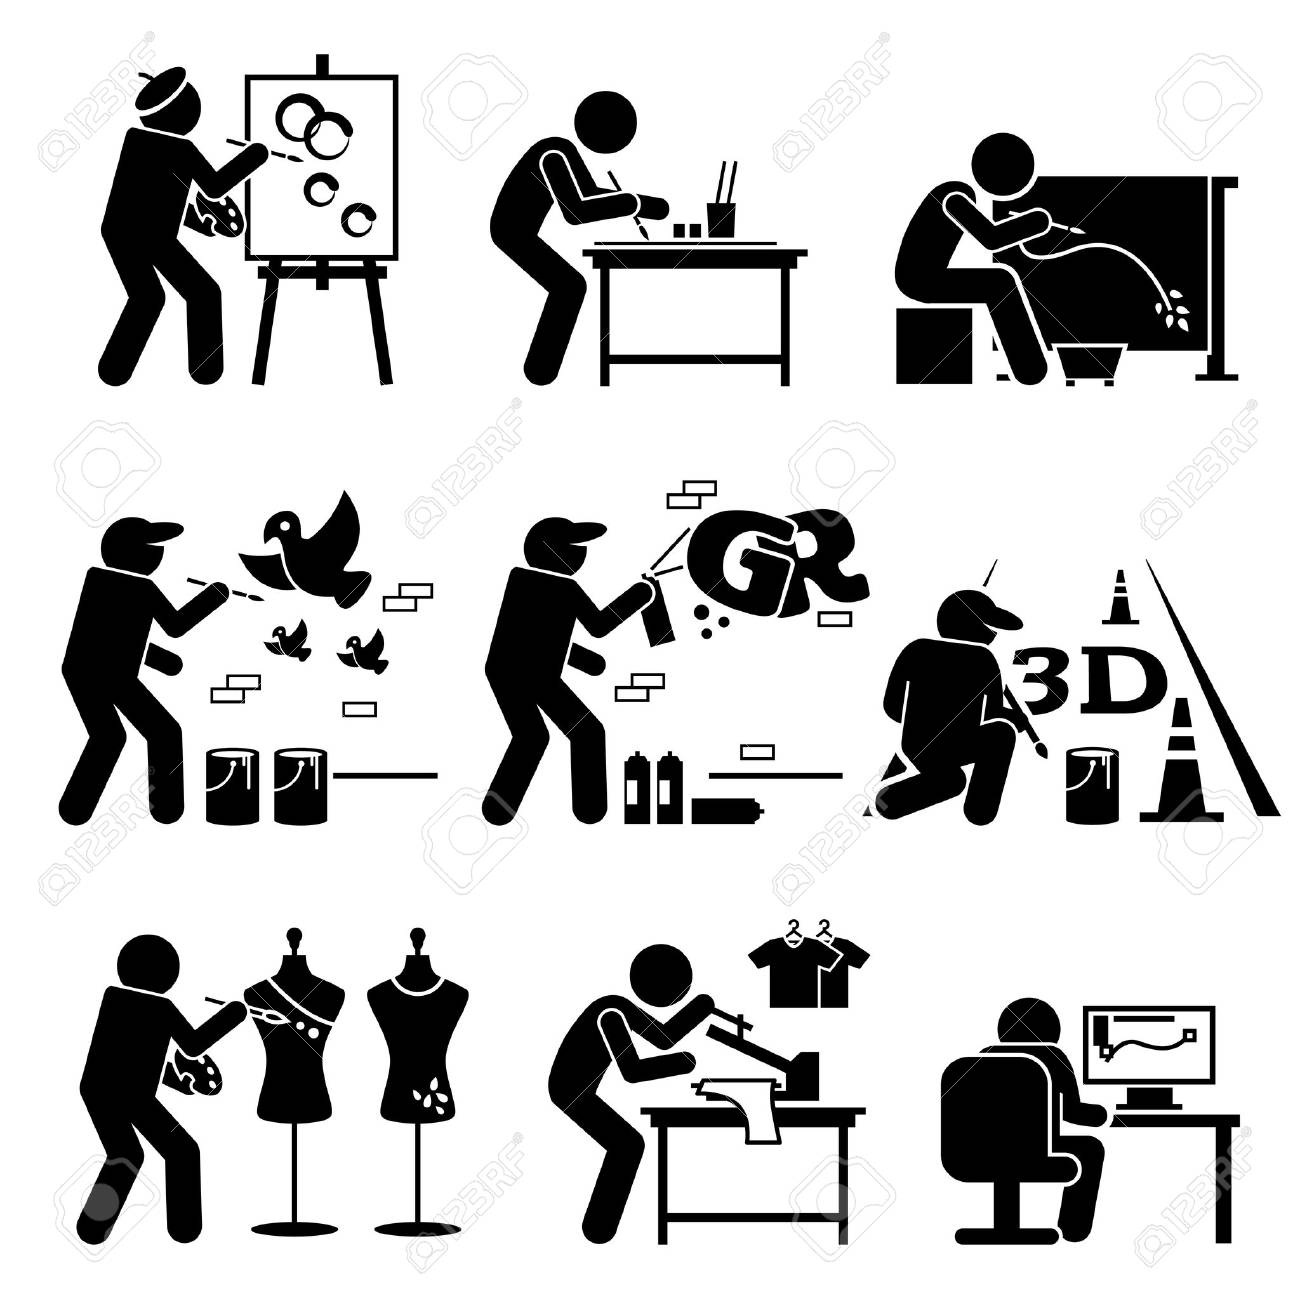 painter street artist graphic designer drawing arts stick figure rh 123rf com Stick Girl stick people art with sticks